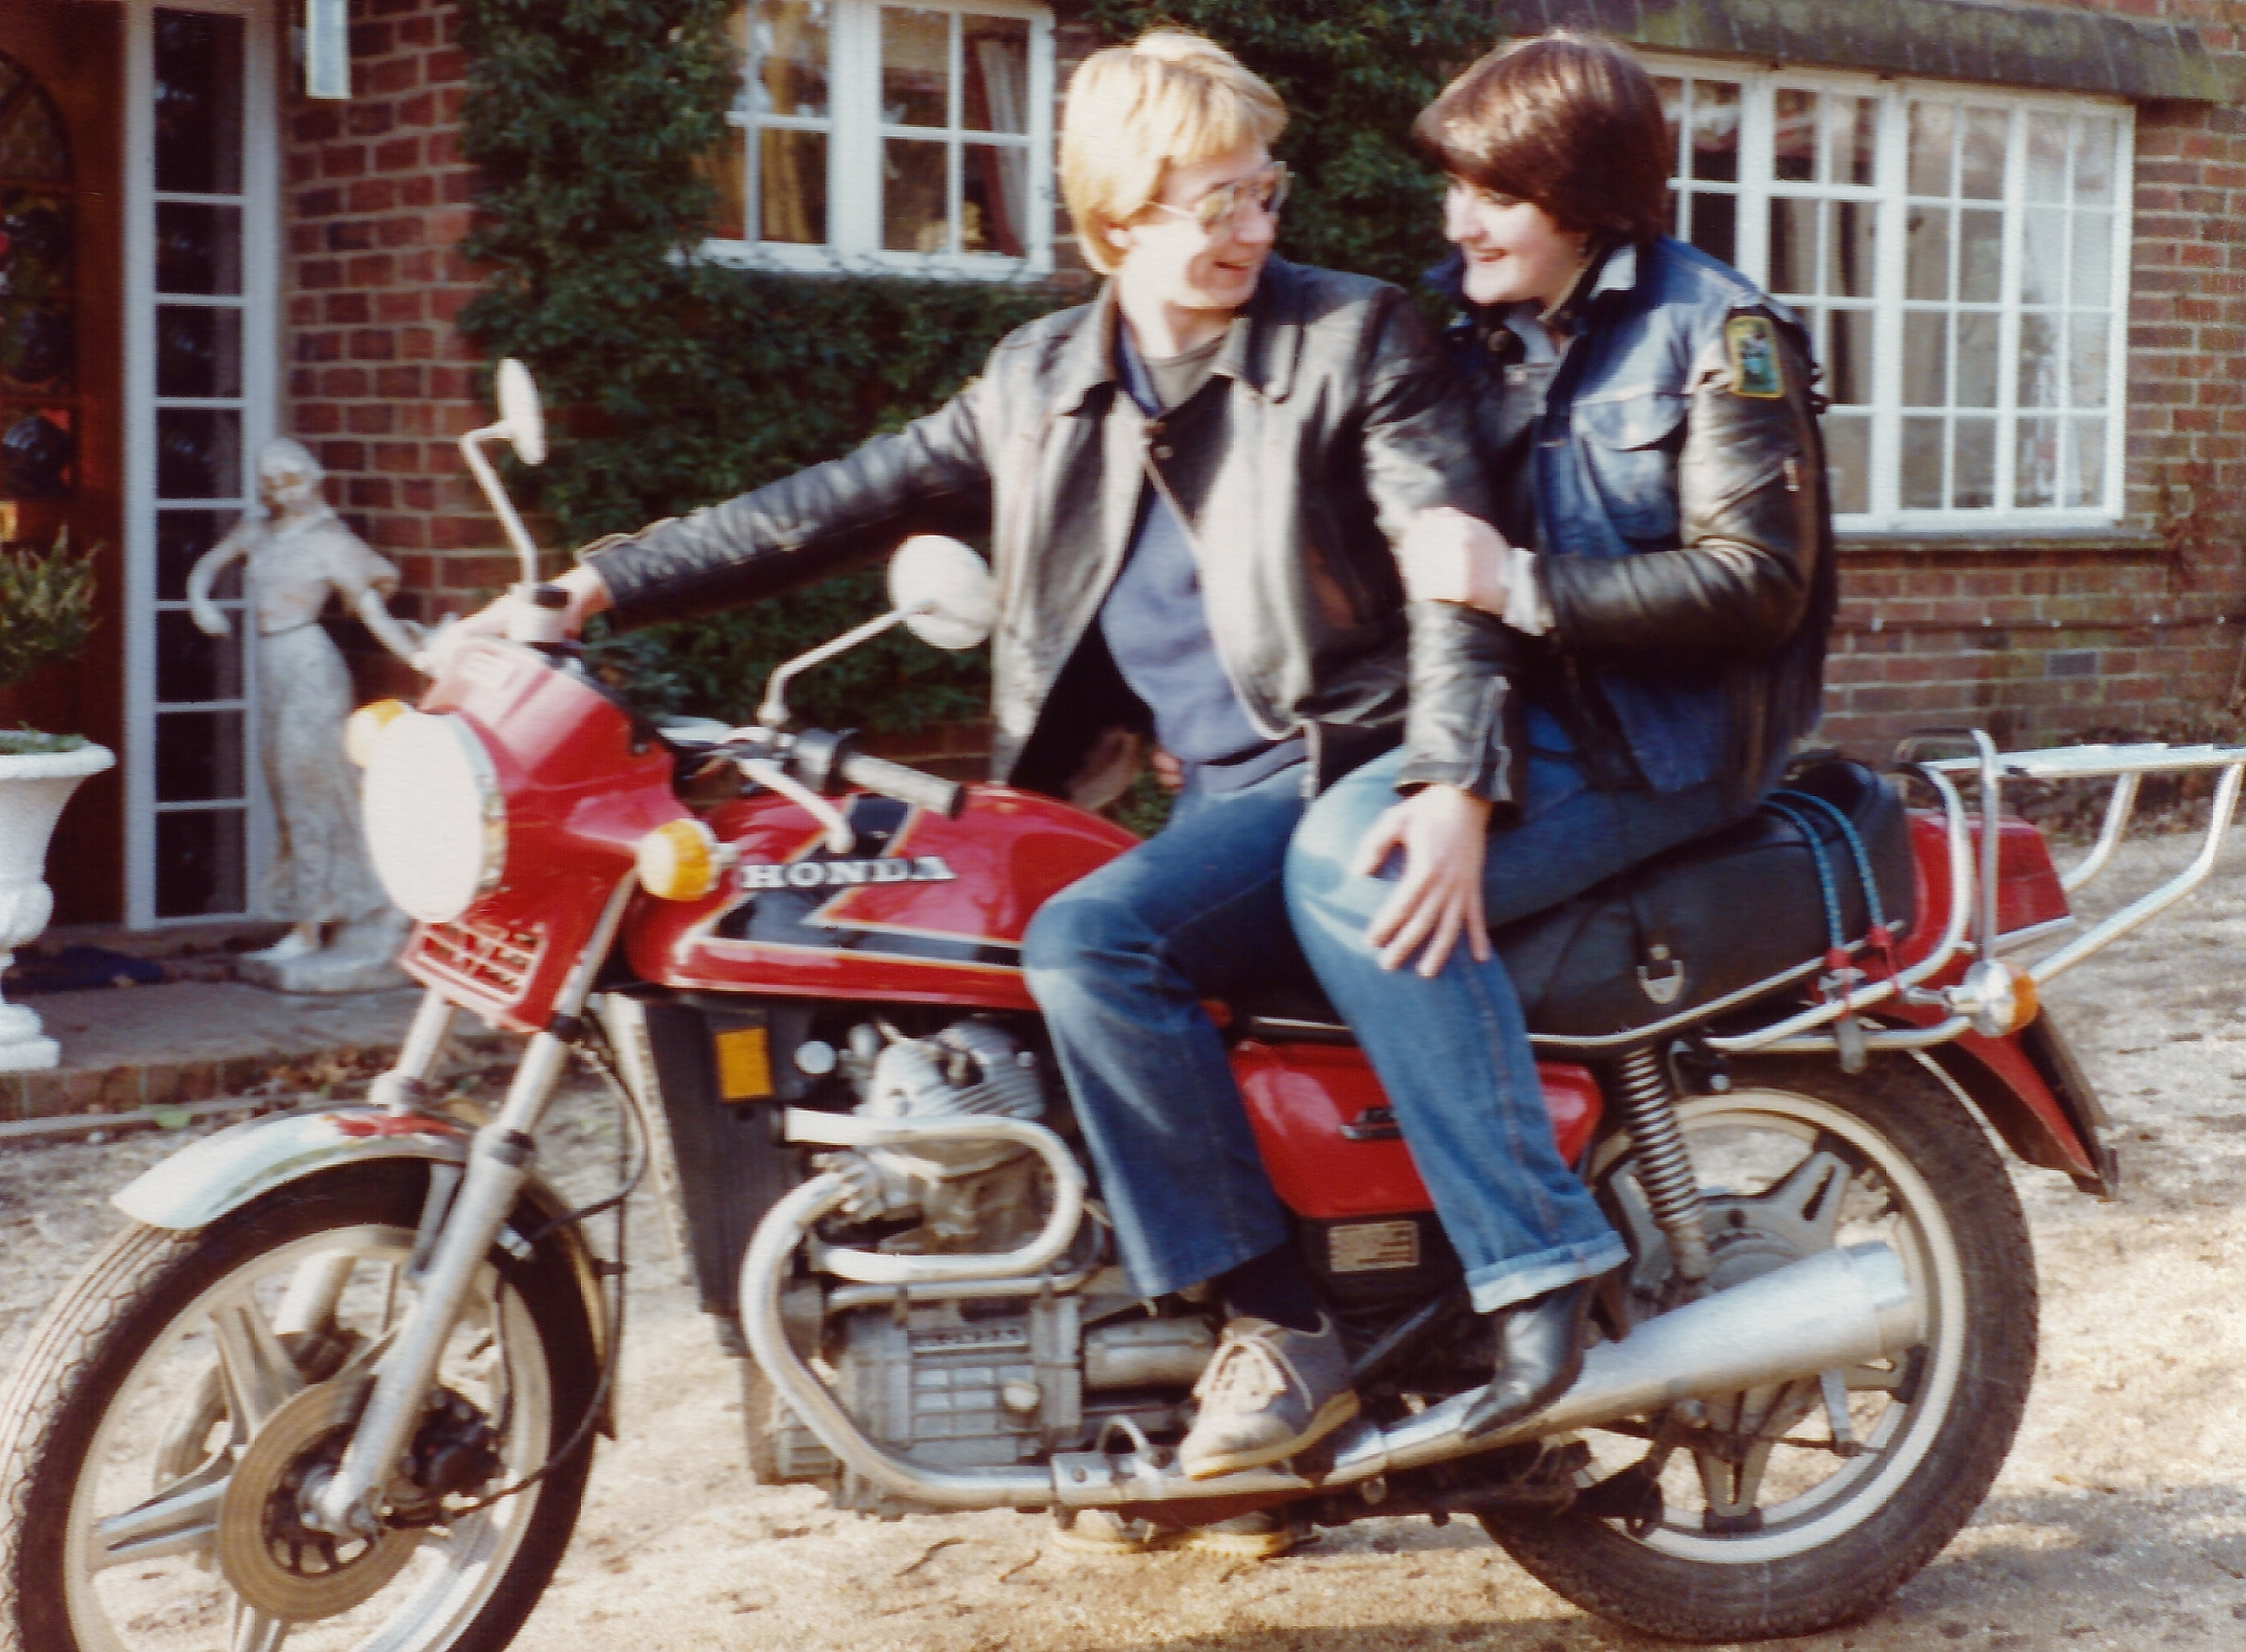 The author and his girlfriend Karen astride the Honda CX500